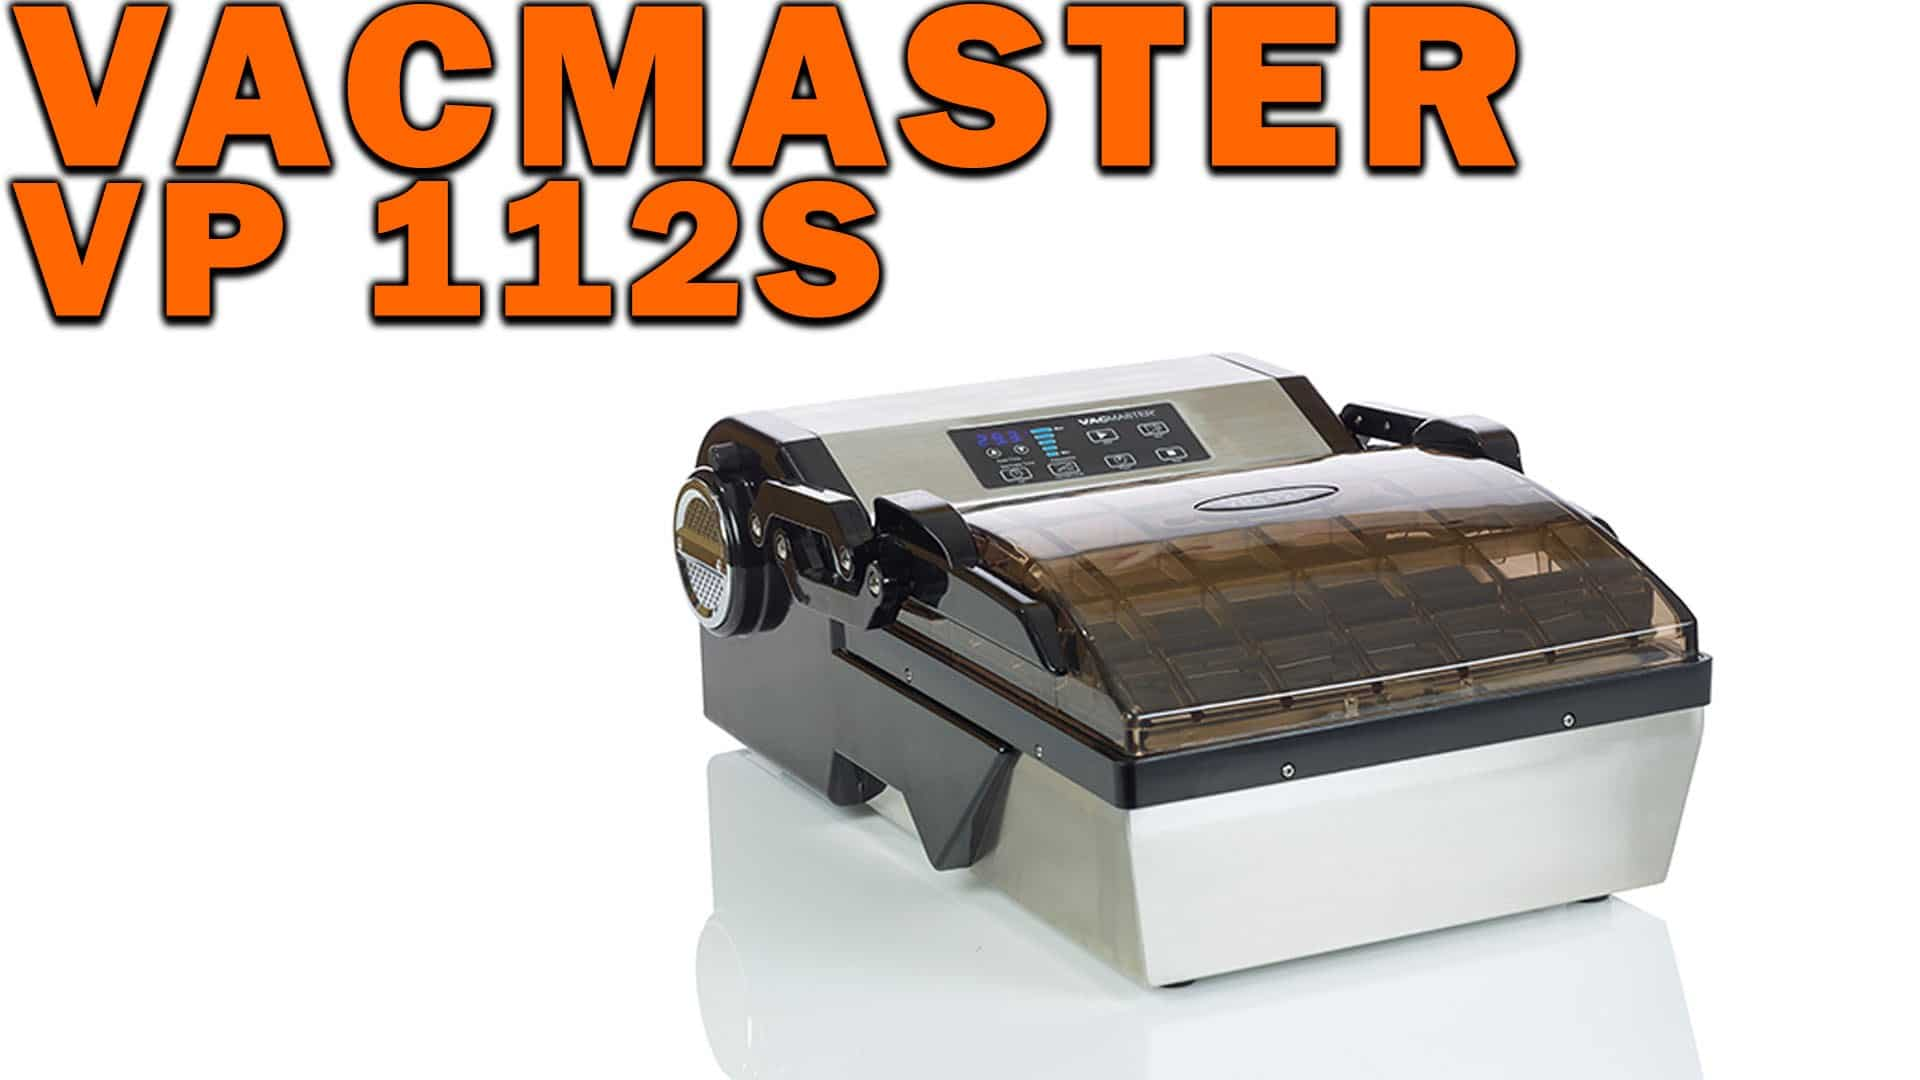 VacMaster VP112S Review